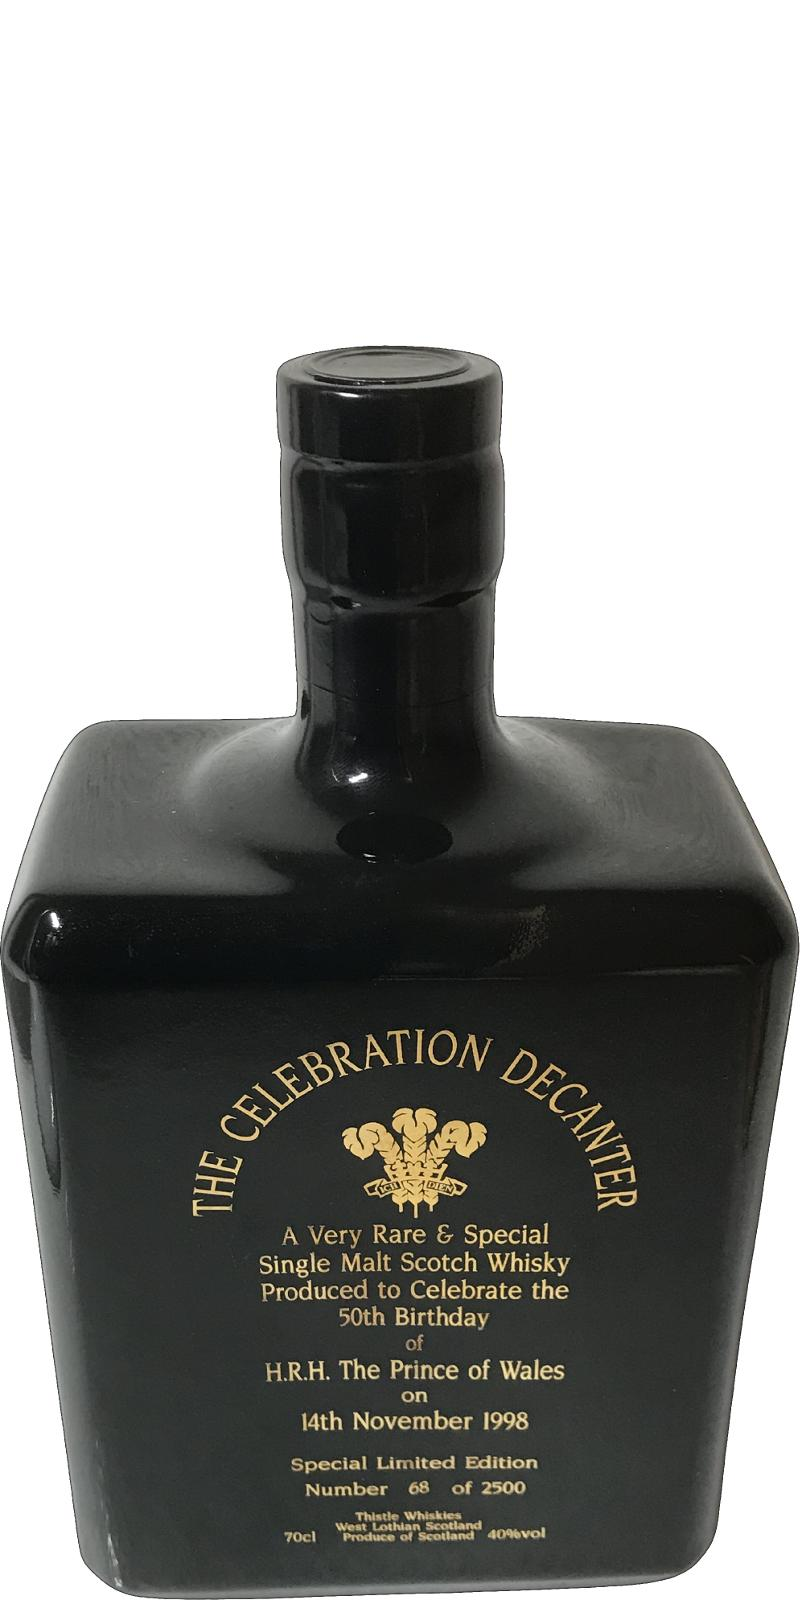 The Celebration Decanter A Very Rare & Special Single Malt Scotch Whisky